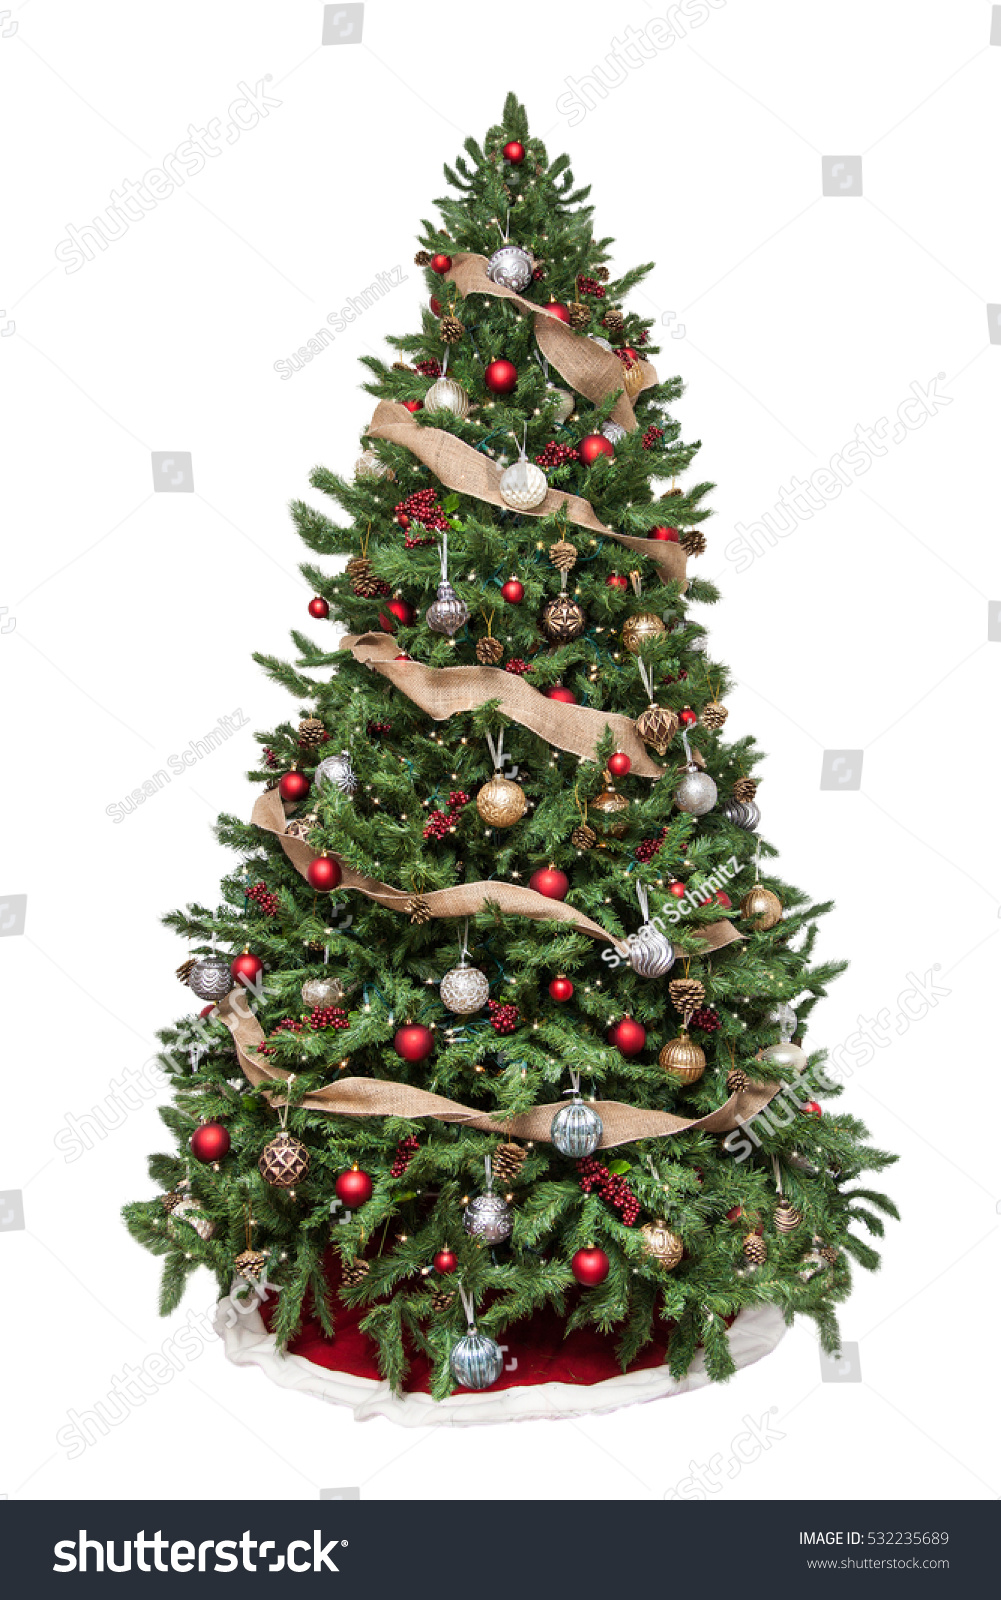 Isolated Christmas Tree Decorated Ornaments Burlap Stock Photo Edit Now 532235689